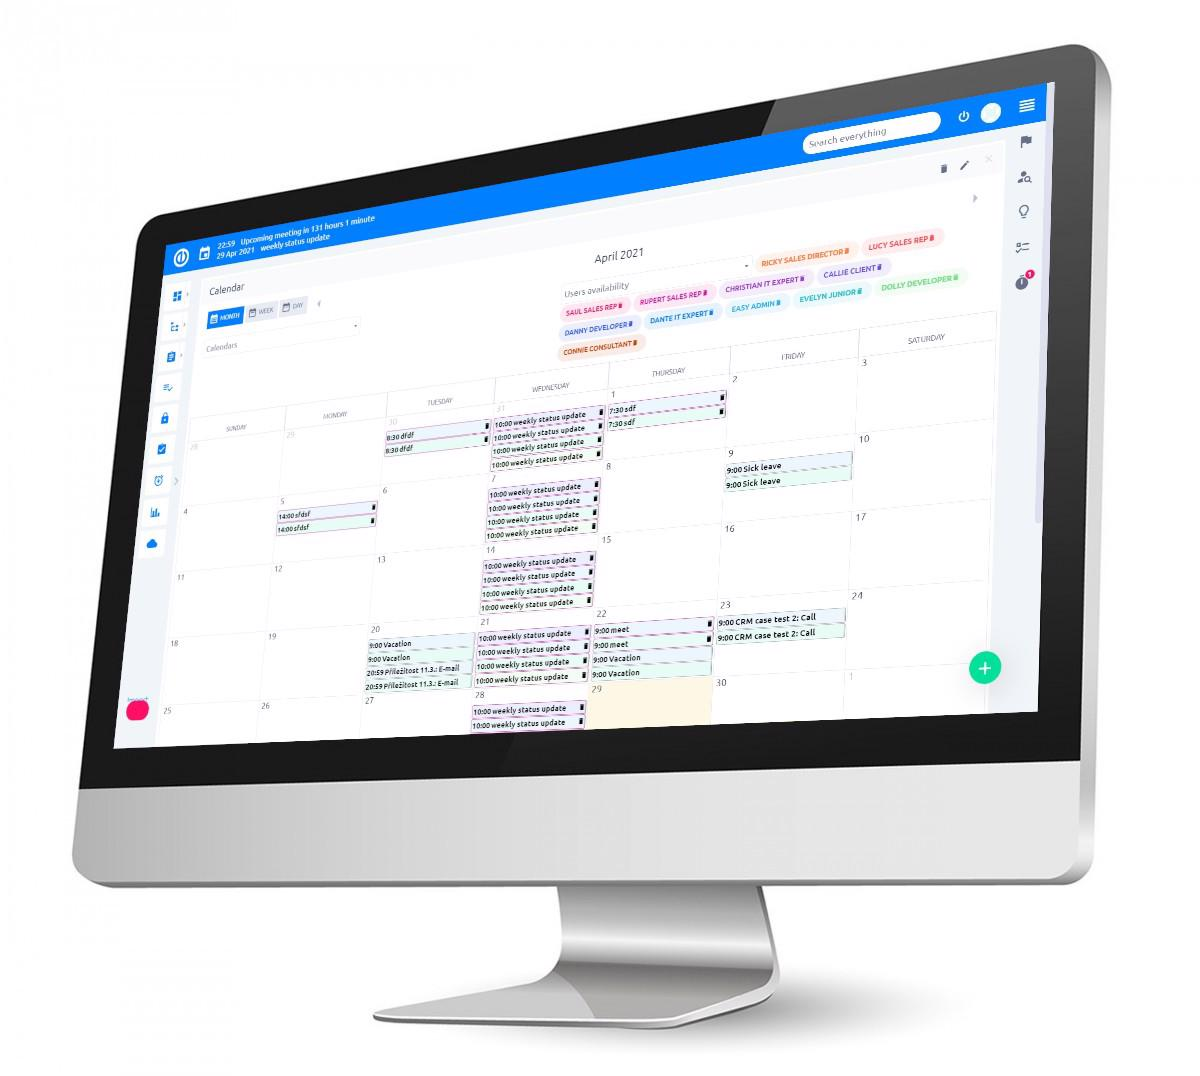 Easy Redmine 2018 - Meeting calendar - monthly view